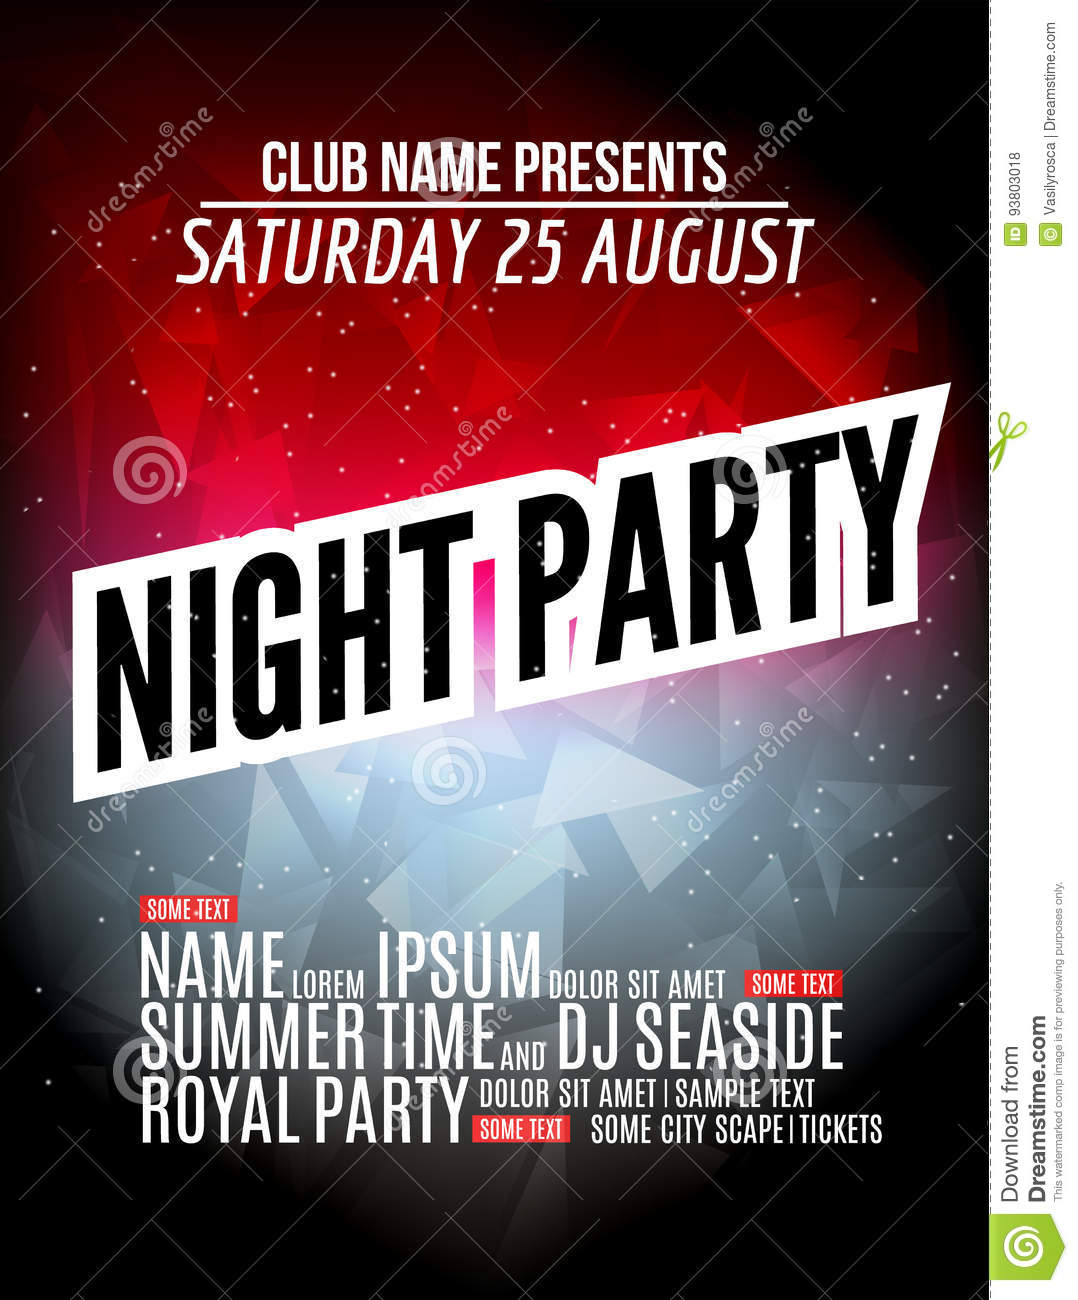 Download Modern Club Music Party Template, Night Dance Party Flyer, Brochure.  Night Party